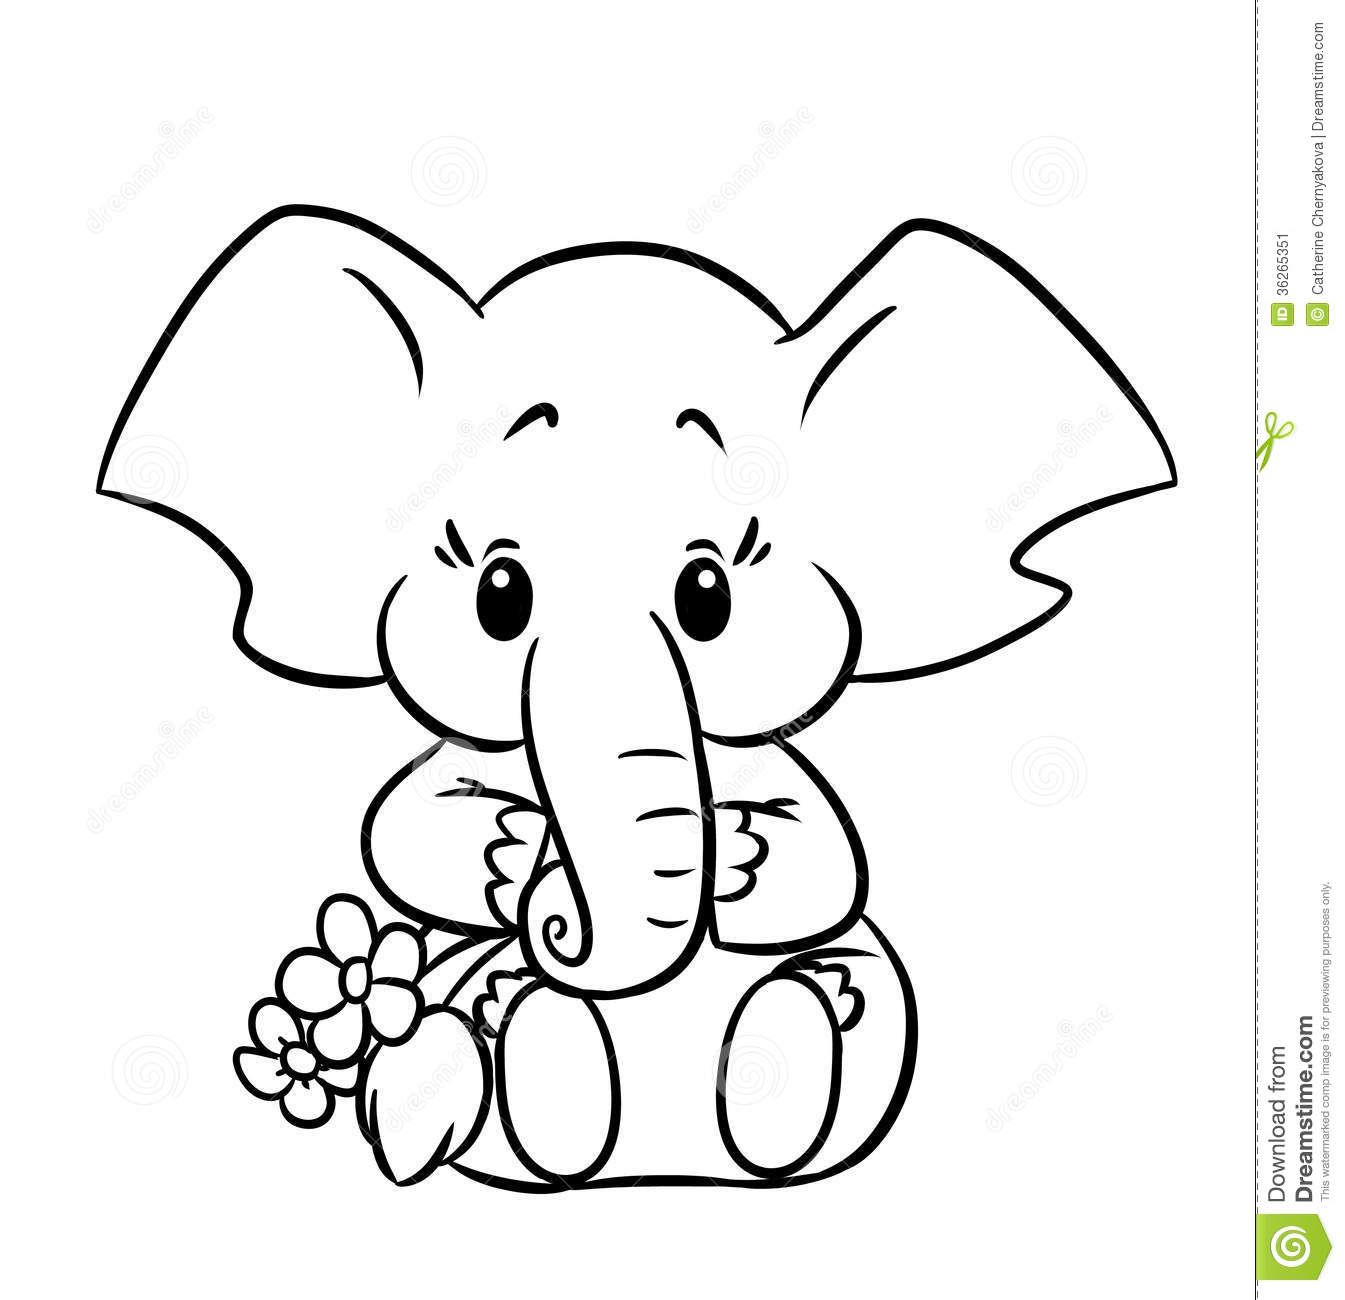 Elephant Coloring Pages Pinterest Tumblr Yahoo Imgur Wallpapers Elephant Coloring Pages